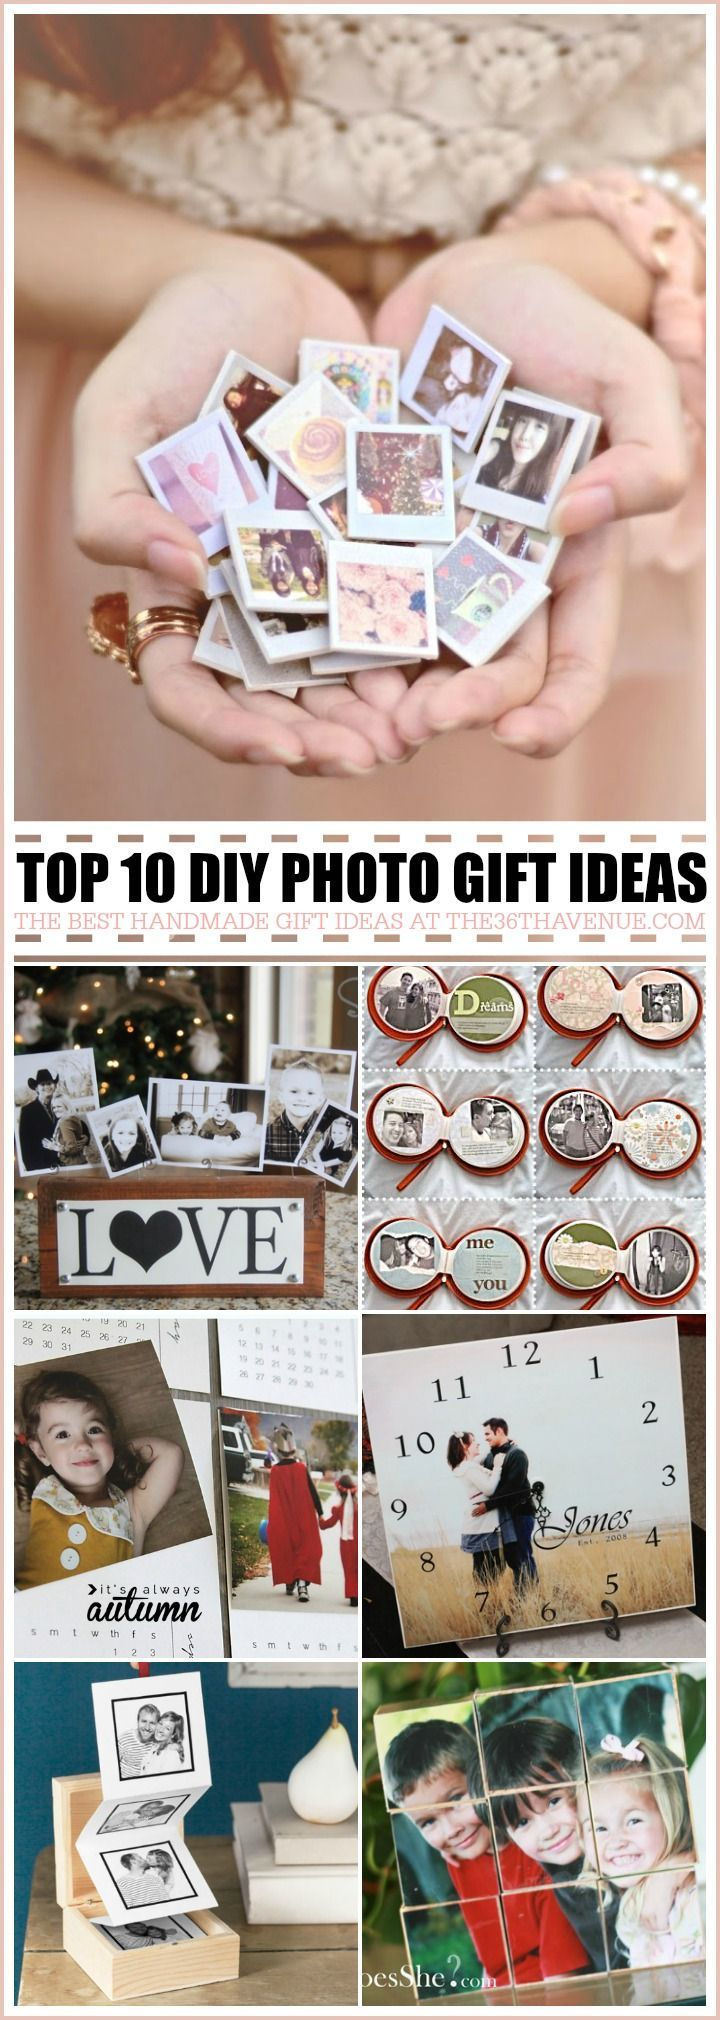 Top 10 Handmade Gifts Using Photos Want Need Love Diy